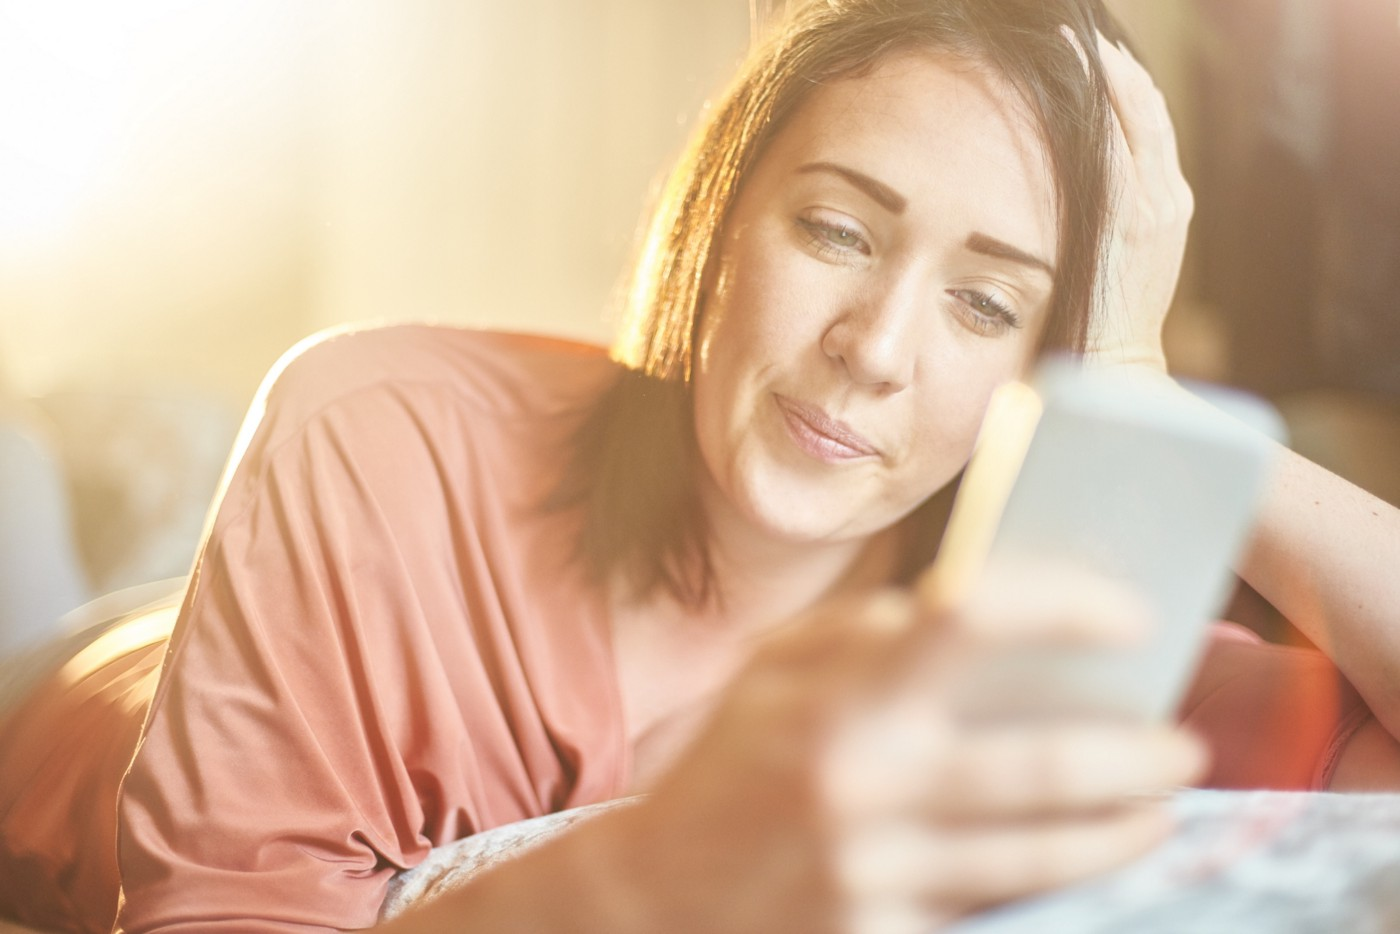 A young woman lying on a sofa looking through an online dating app.